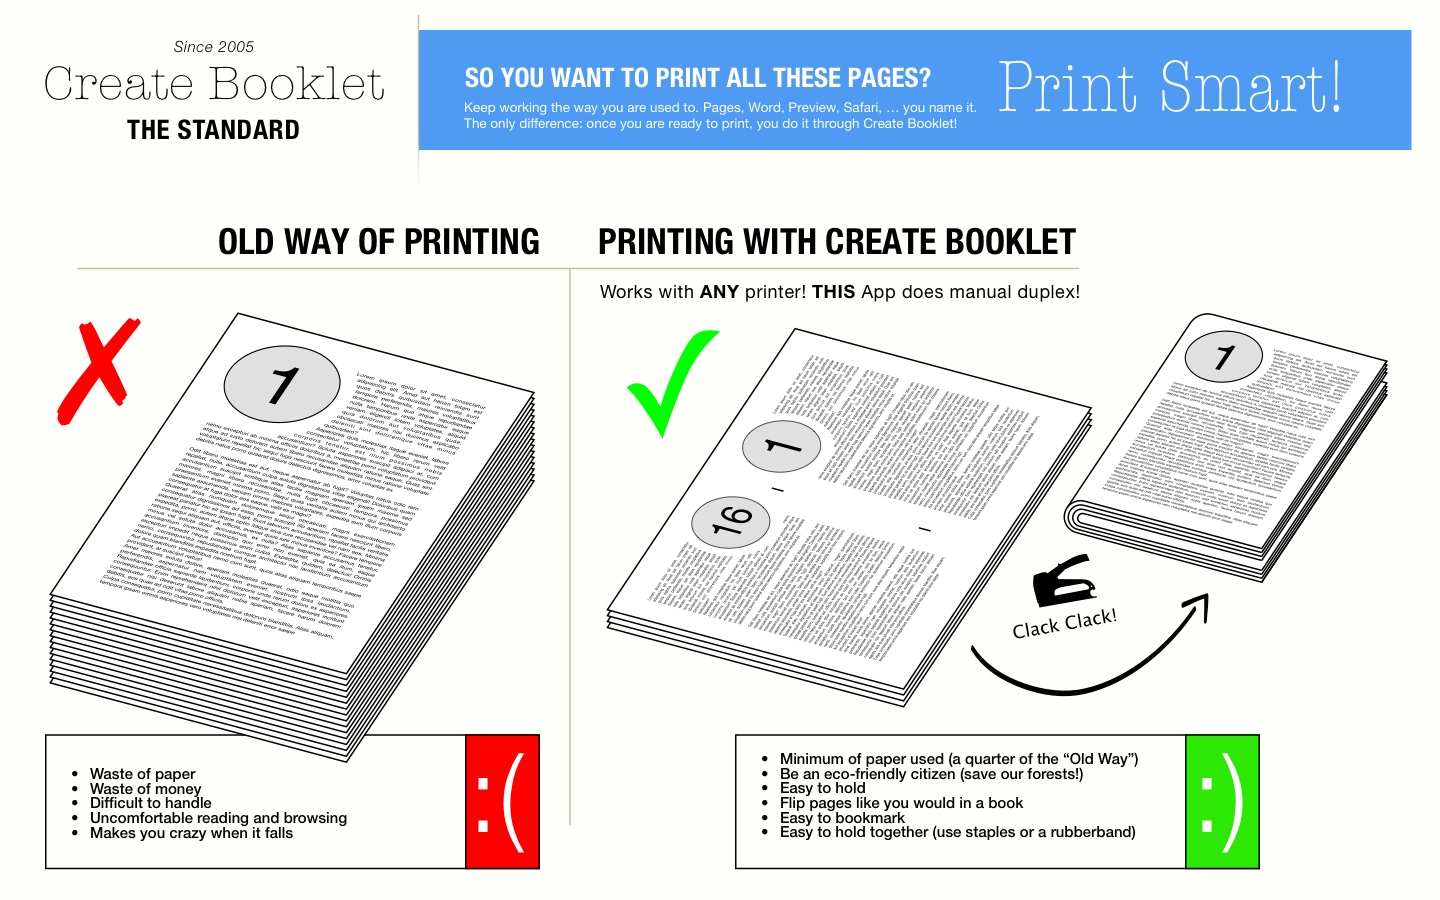 create booklet now easily create a real physical booklet of any